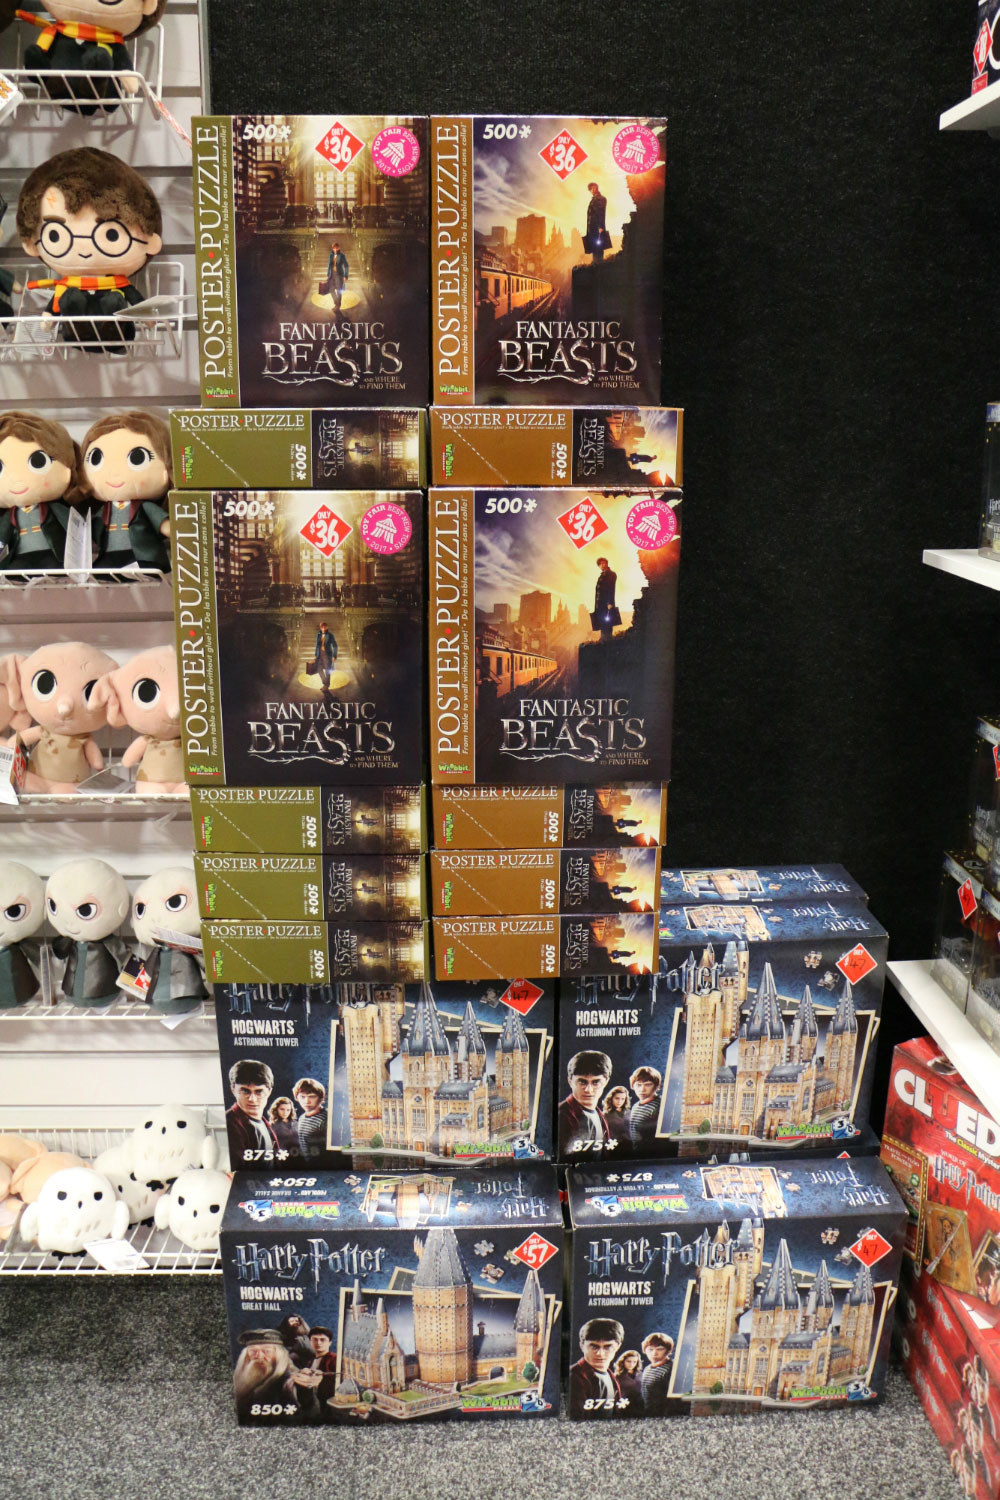 Armageddon Expo 2017 – Auckland – Harry Potter Merchandise – 8 (Photo credit: Tracey Wong)